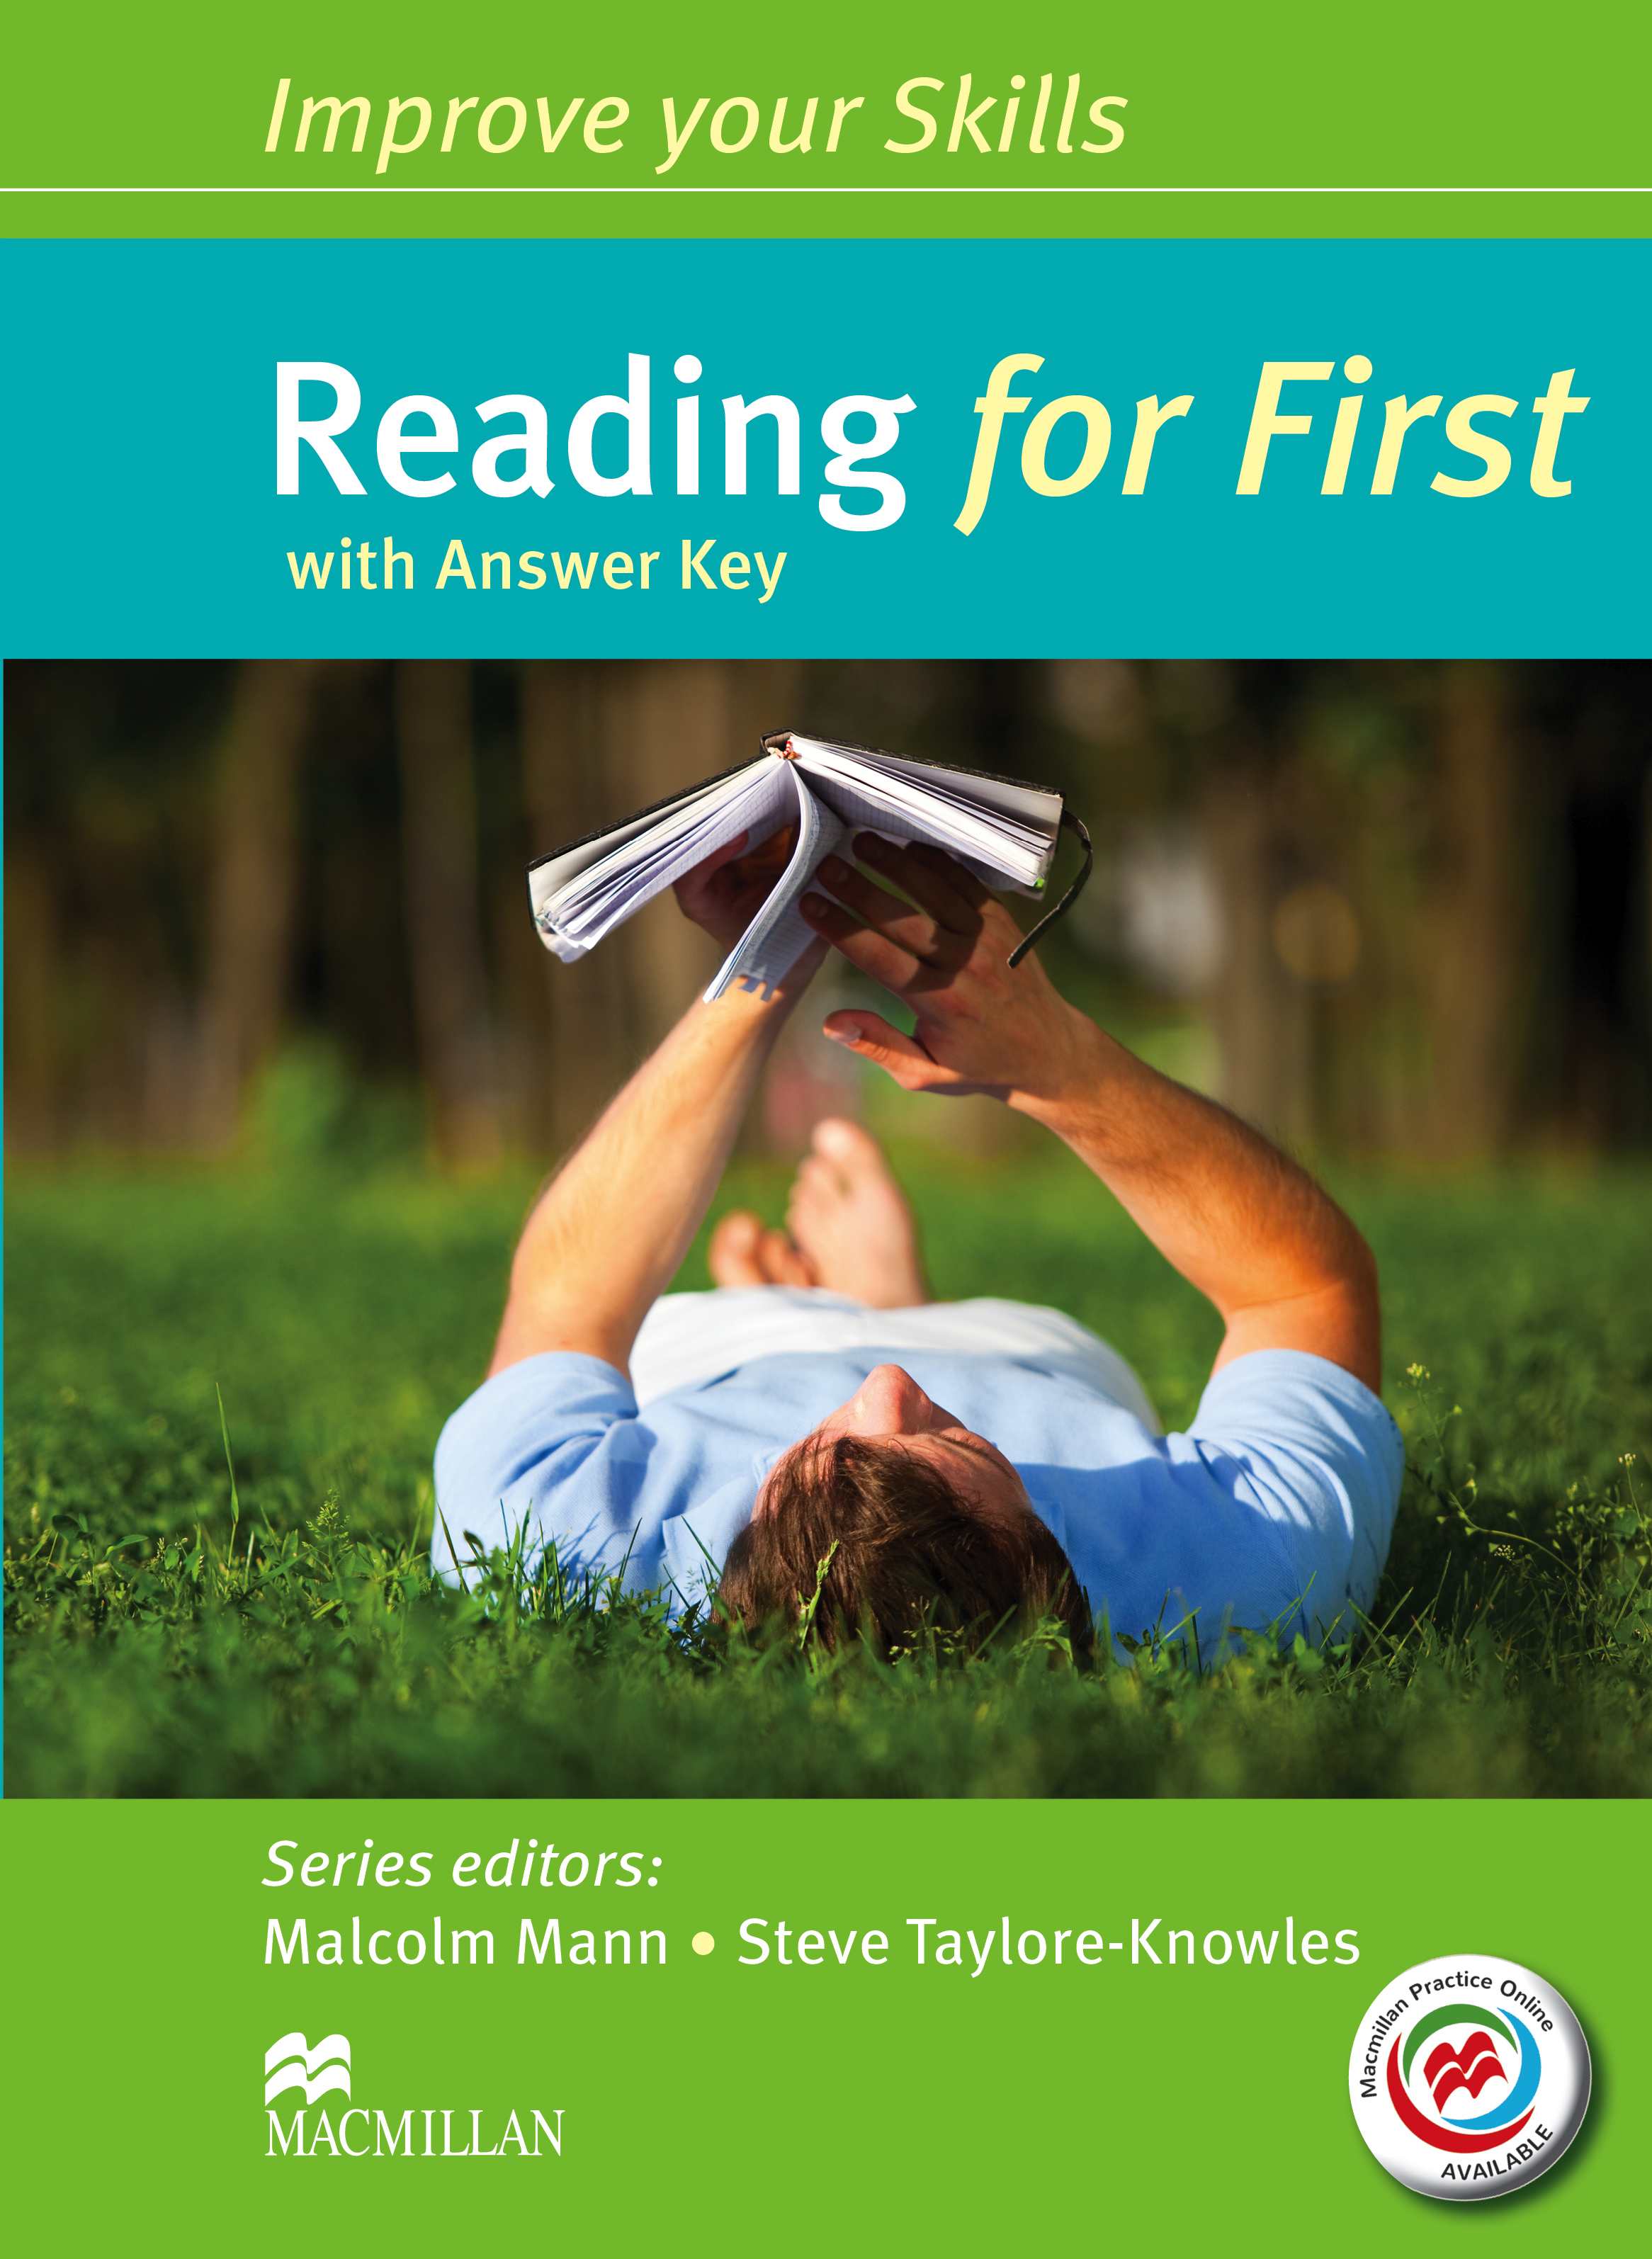 Improve your Skills: Reading for First Student